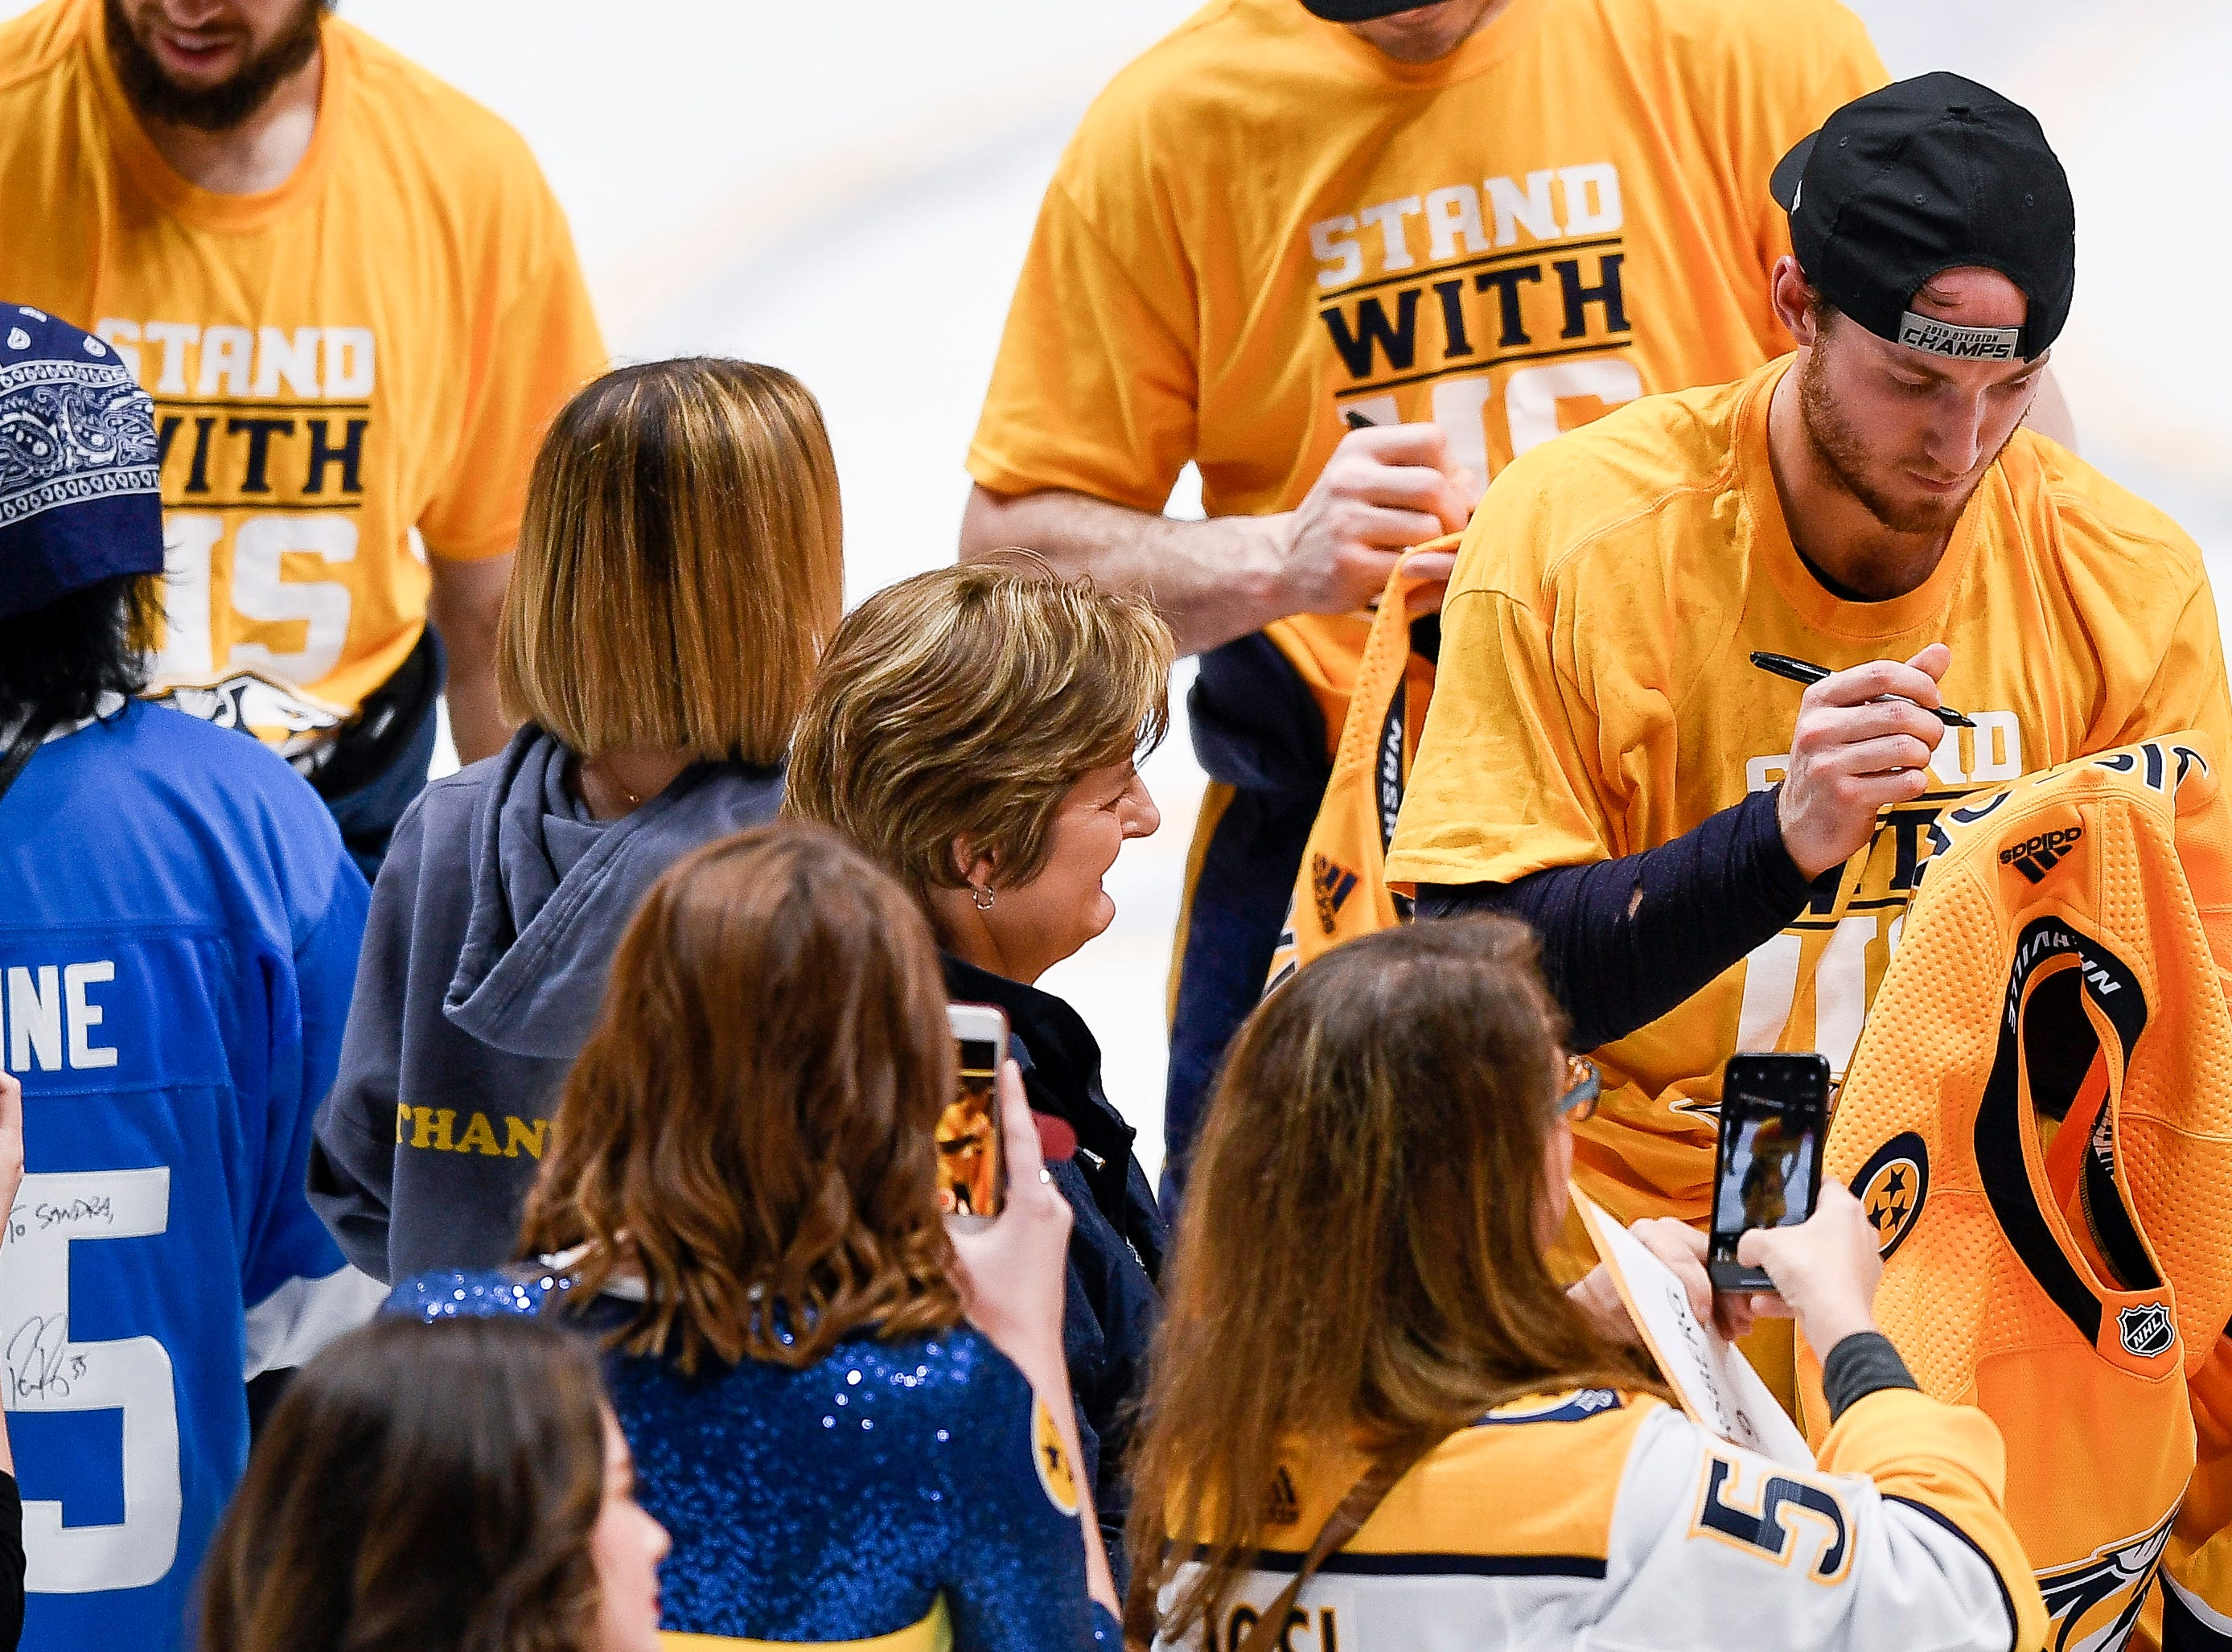 Nashville Predators center Colton Sissons (10) autographs his jersey after defeating the Chicago Blackhawks at Bridgestone Arena in Nashville, Tenn., Saturday, April 6, 2019.